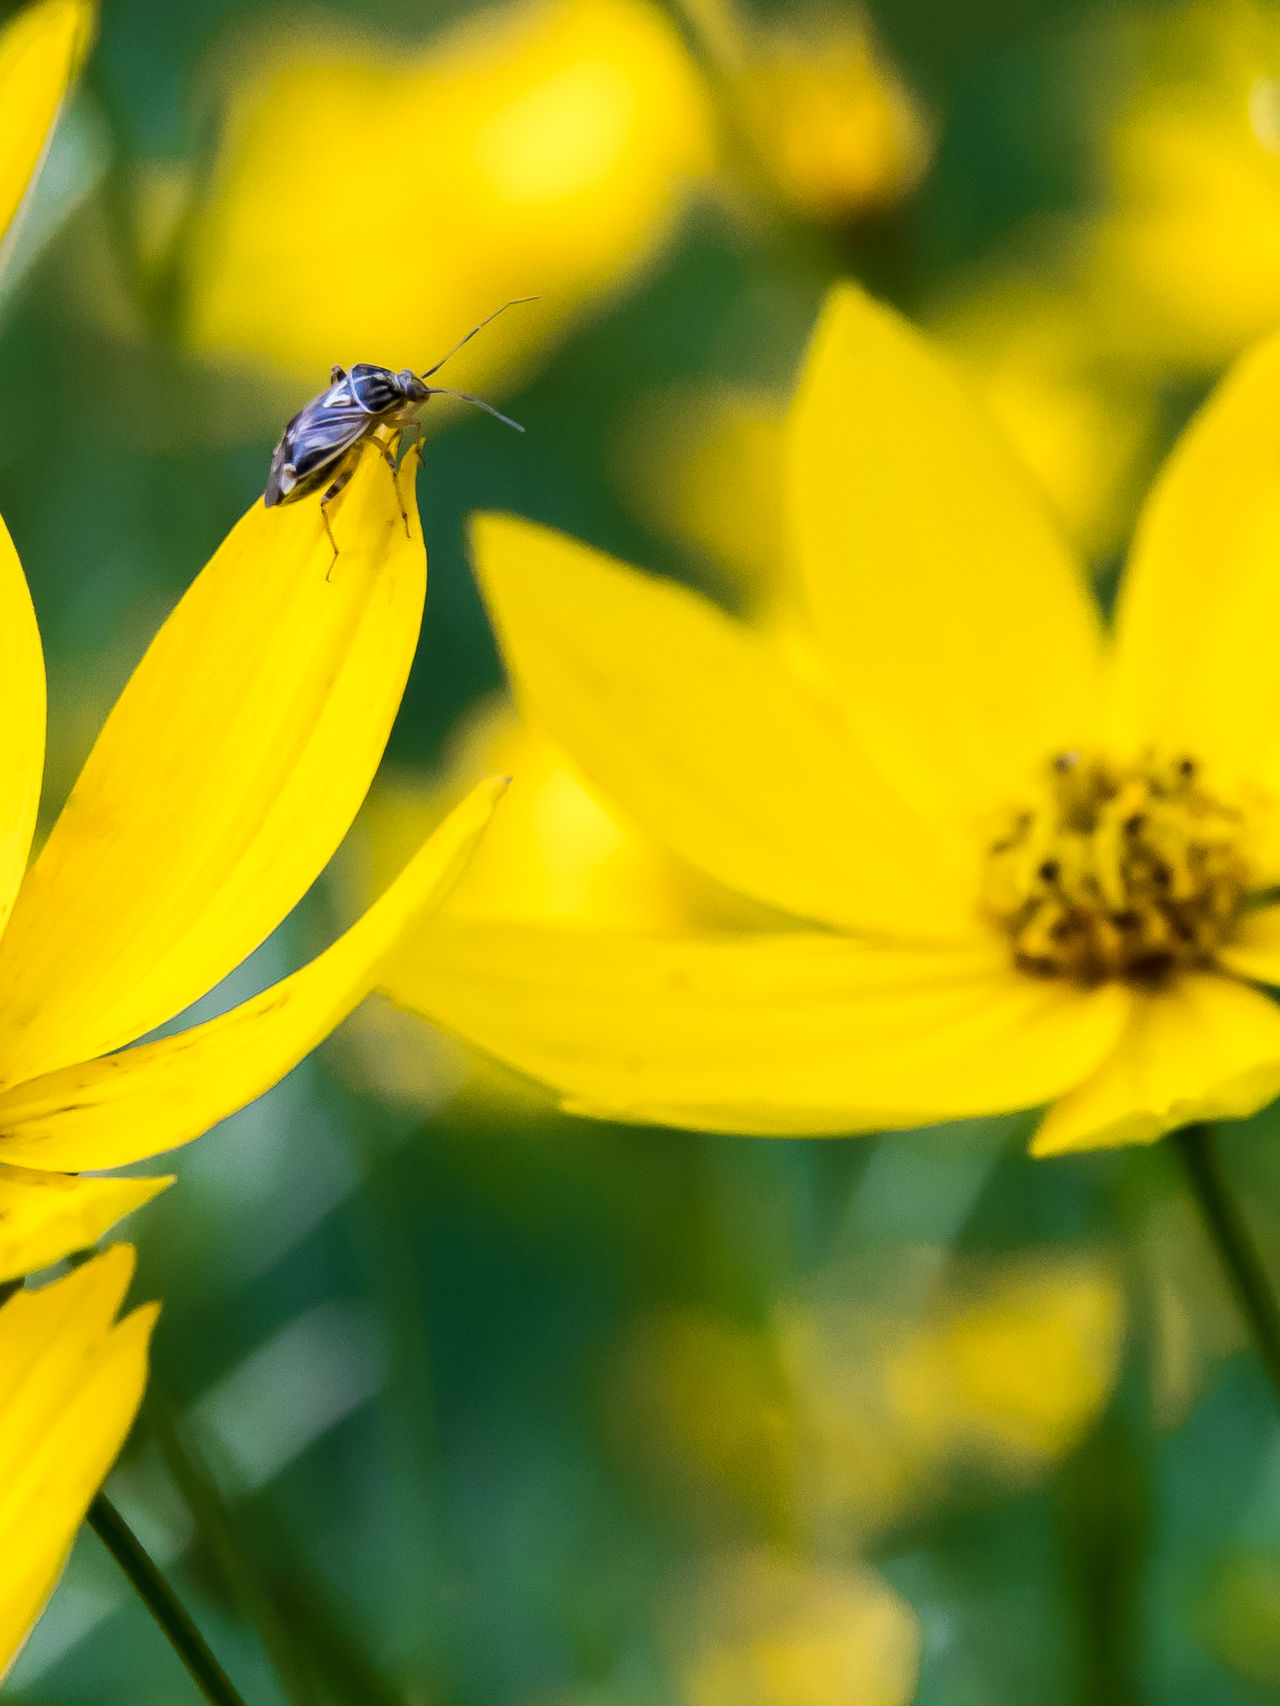 Background, Beauty In Nature, Beetle, Bloom, Blooming, Blossom, Botanical, Botany, Bright, Bug, Close, Closeup, Close-up, Color, Color Image, Colorful, Coreopsis, Day, Dive, Flora, Floral, Flower, Fresh, Garden, Green, Green Color, Growth, Height, Insect, Beauty In Nature Blooming Close-up Coreopsis (Perennial) Flower Flower Head Insect Nature No People Outdoors Petal Plant Pollination Yellow